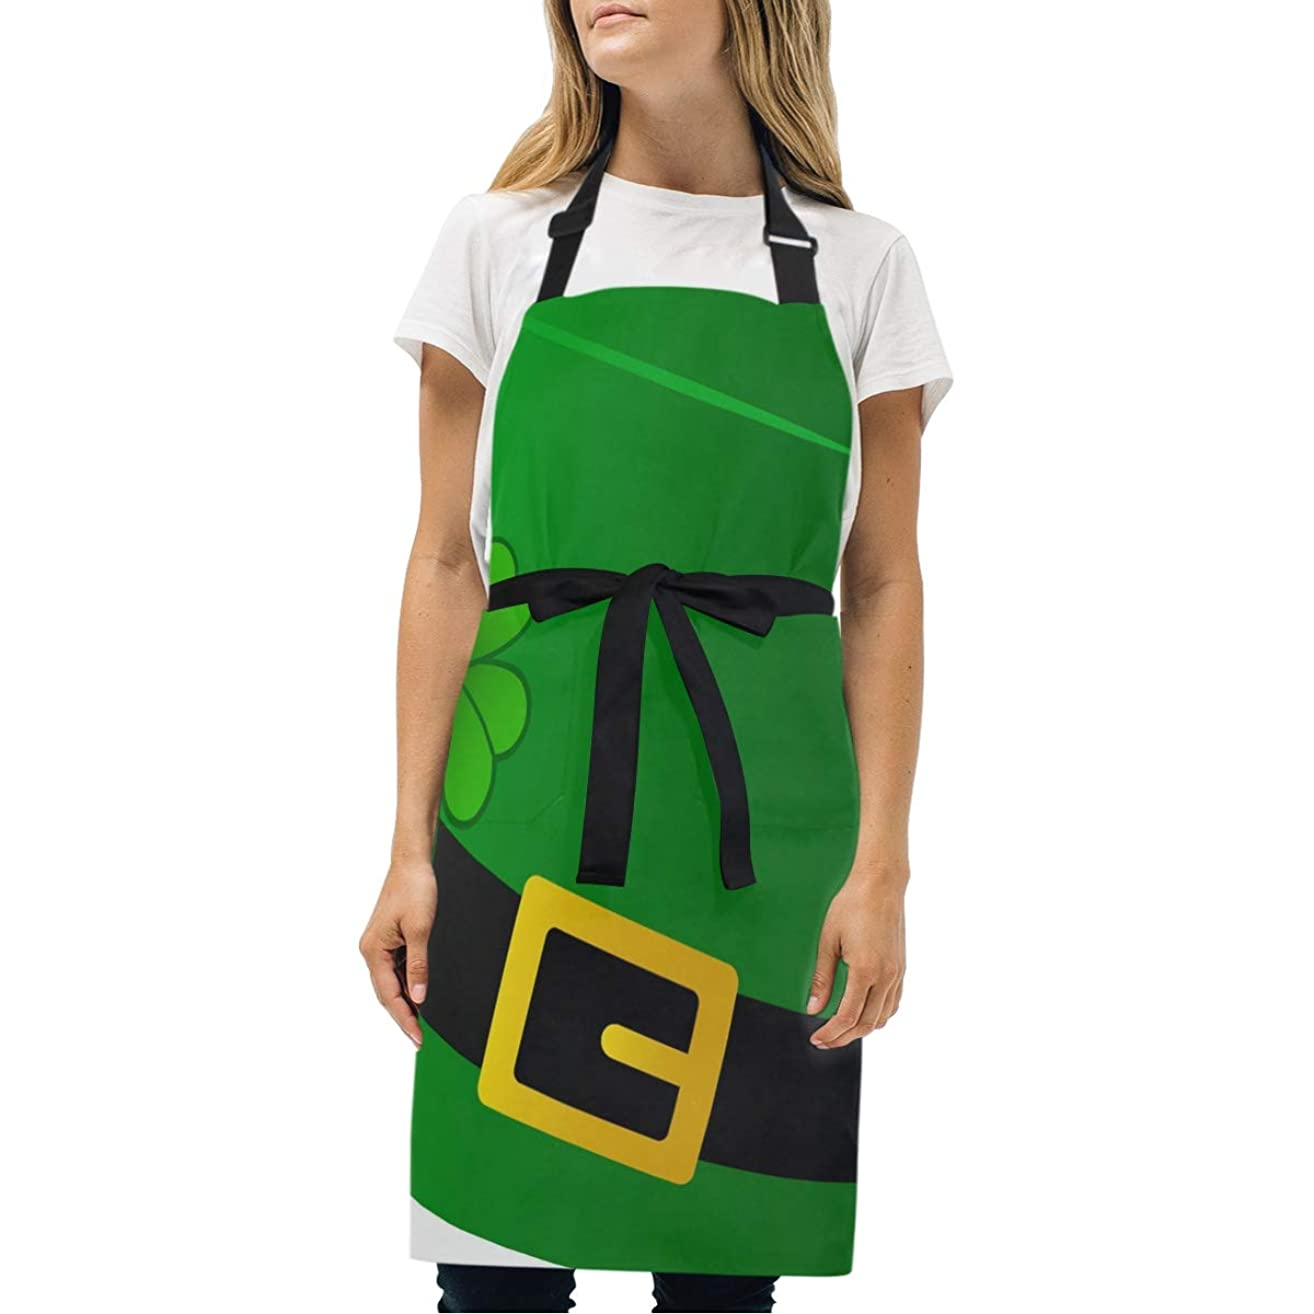 HJudge Womens Aprons St Kitchen Bib Aprons with Pockets Adjustable Buckle on Neck